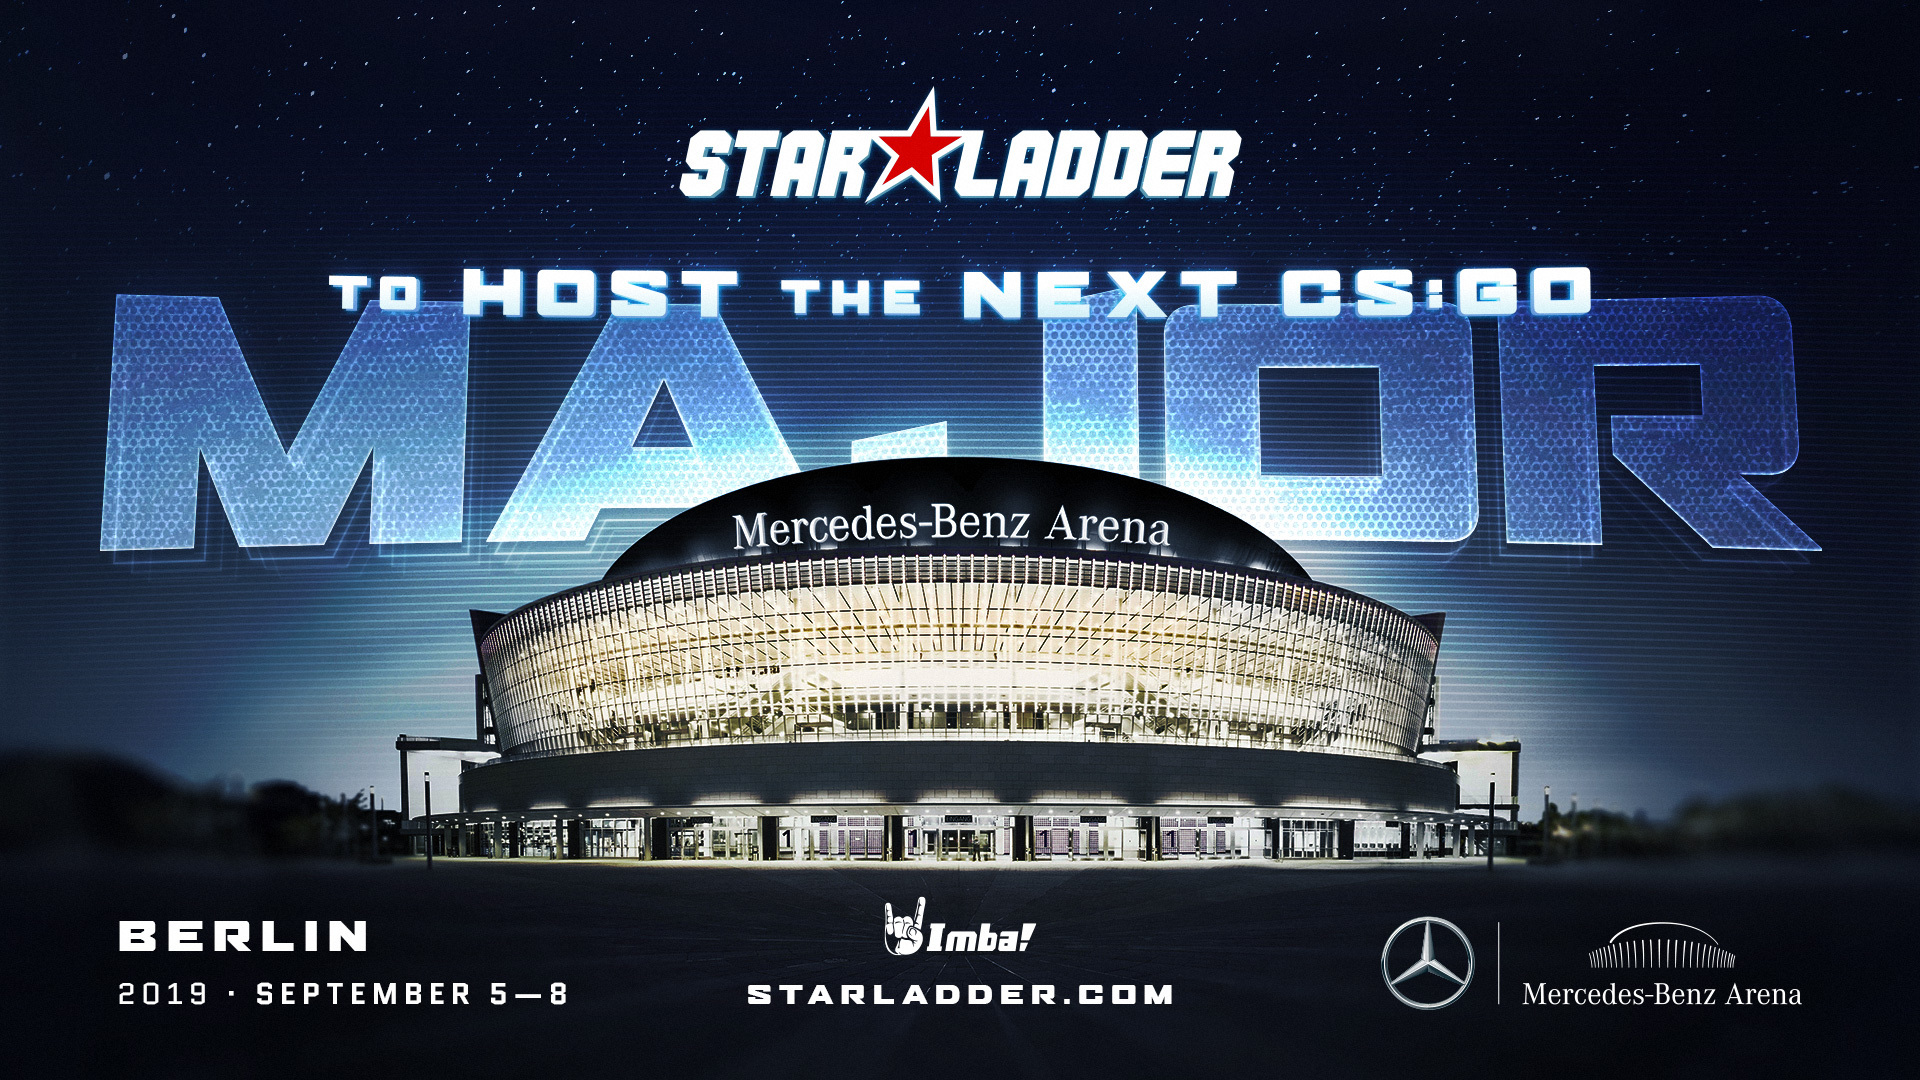 StarLadder to host the next CS:GO Major